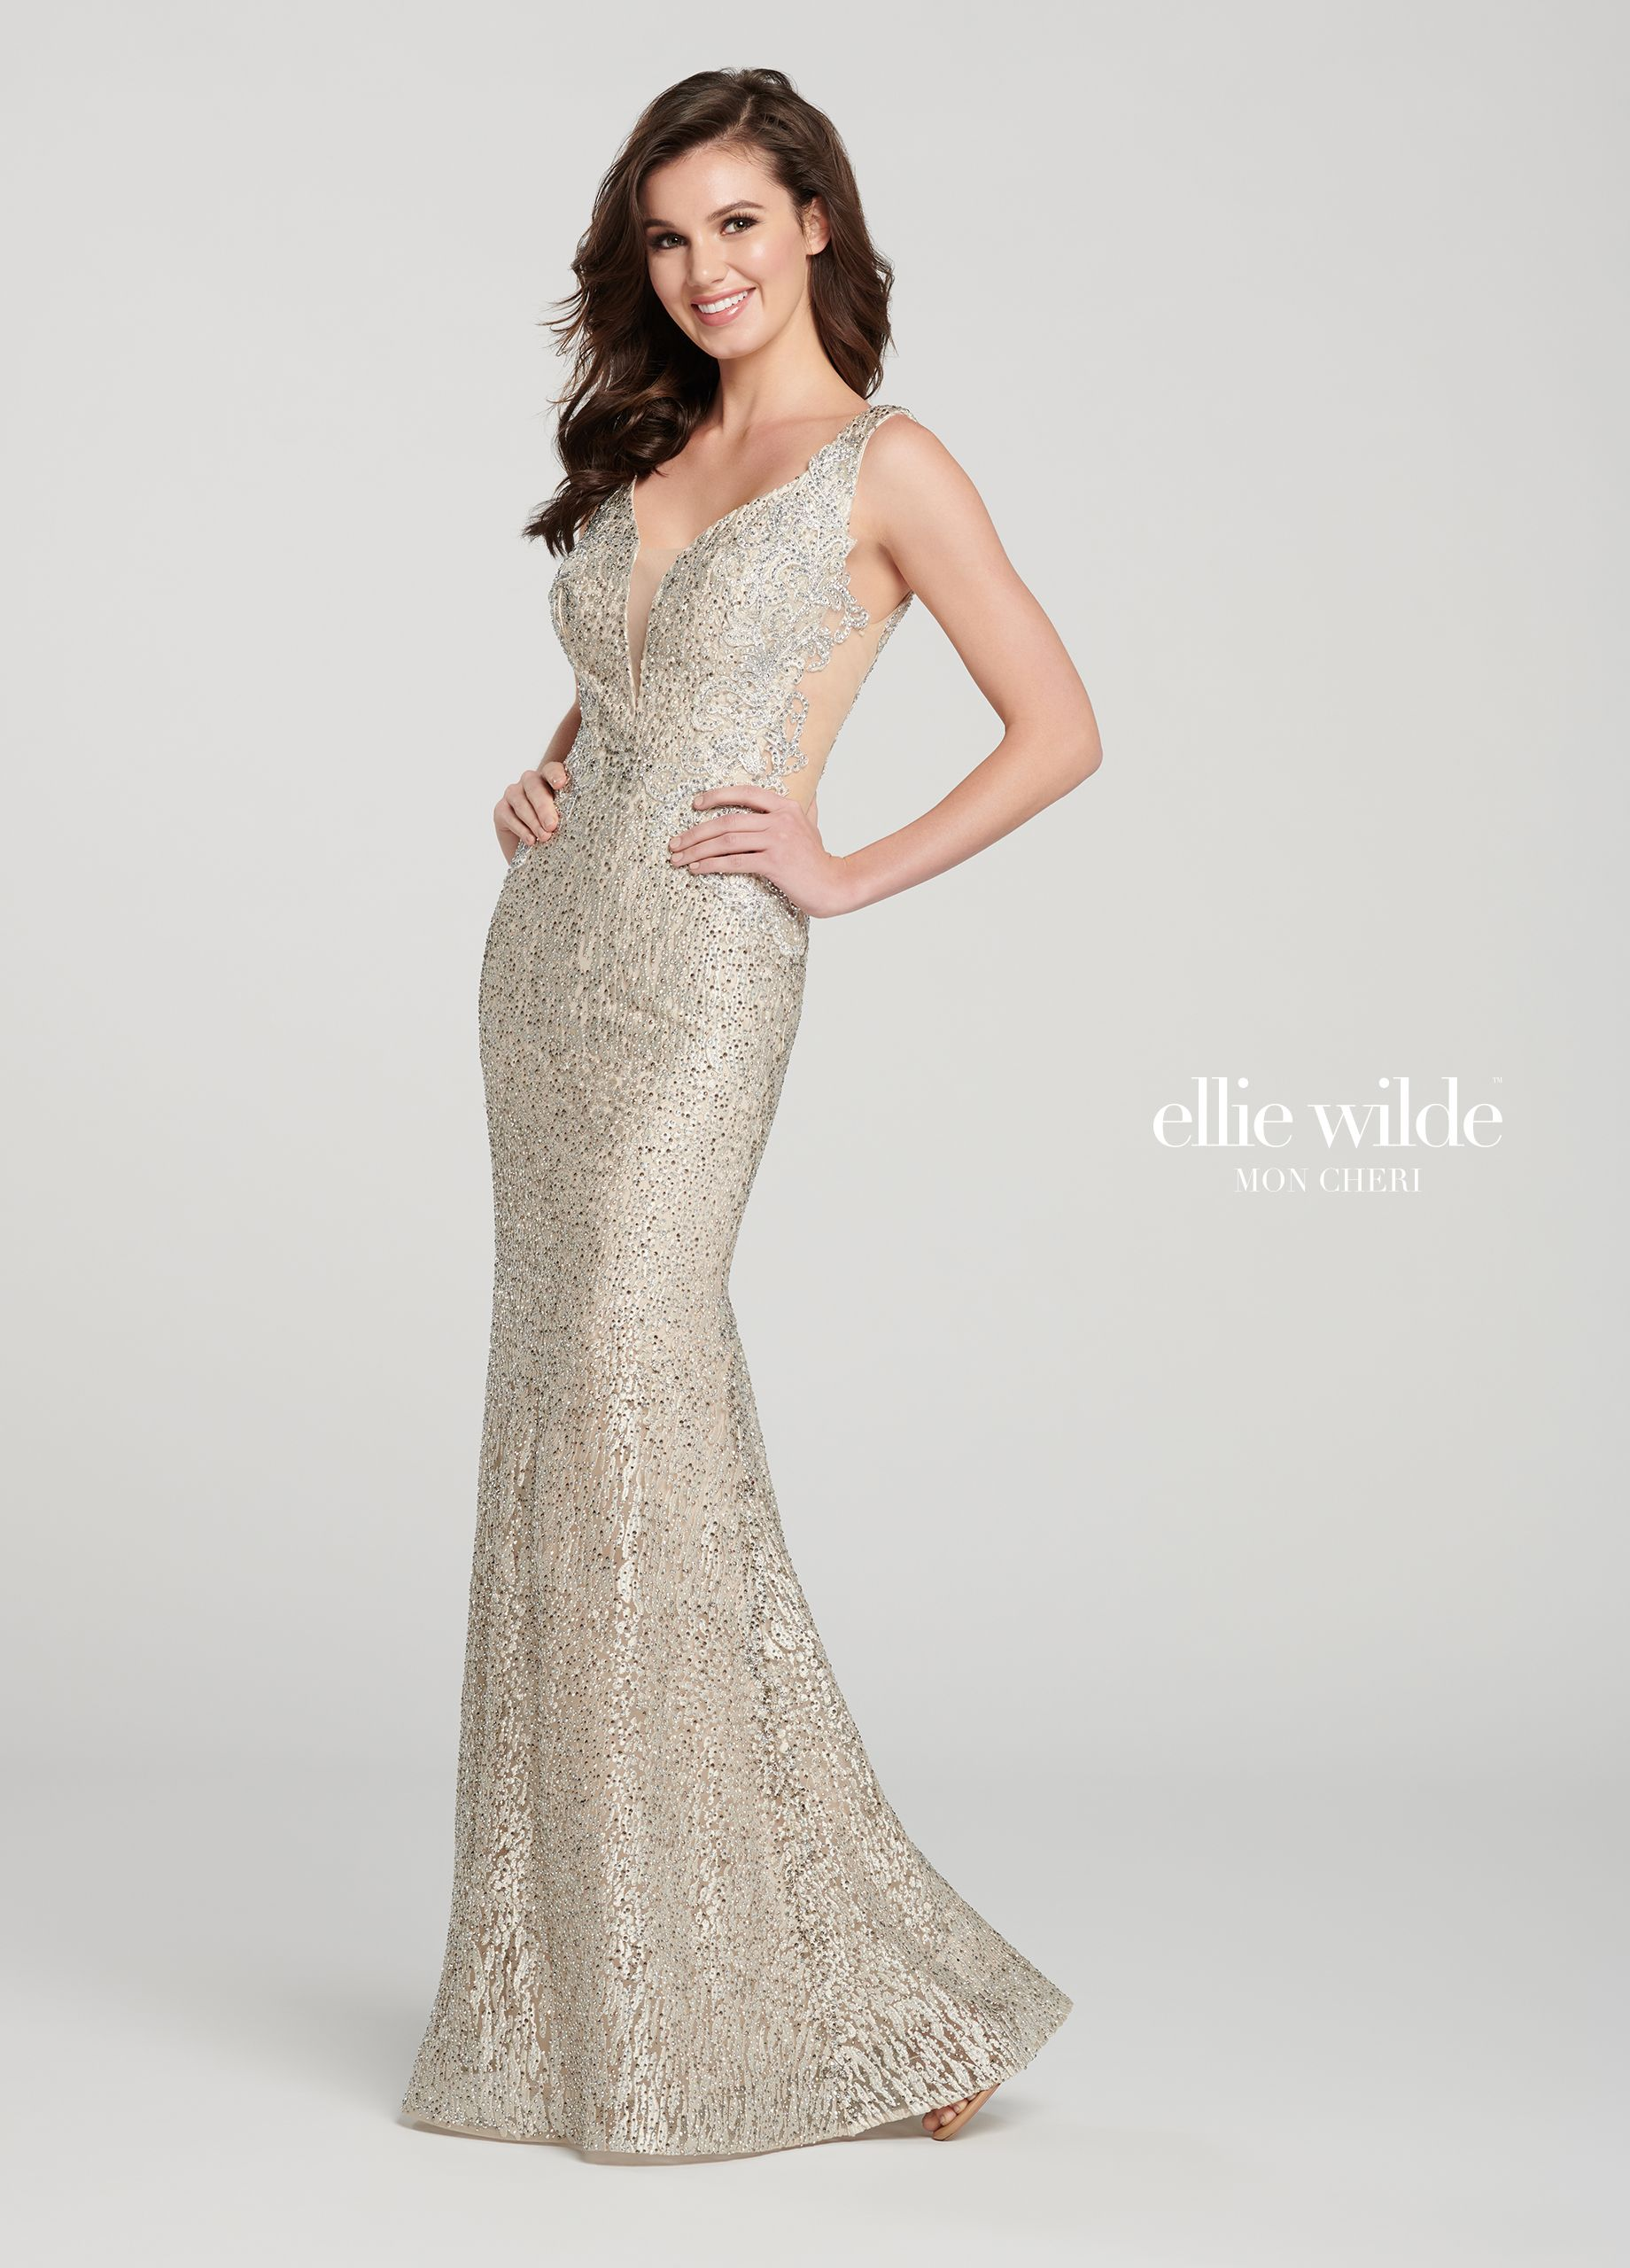 7b40580932 Ellie Wilde EW119080 - This enticing sleeveless embroidered fit and flare  gown with allover stone accents offers a deep plunging V-neck with an  illusion ...